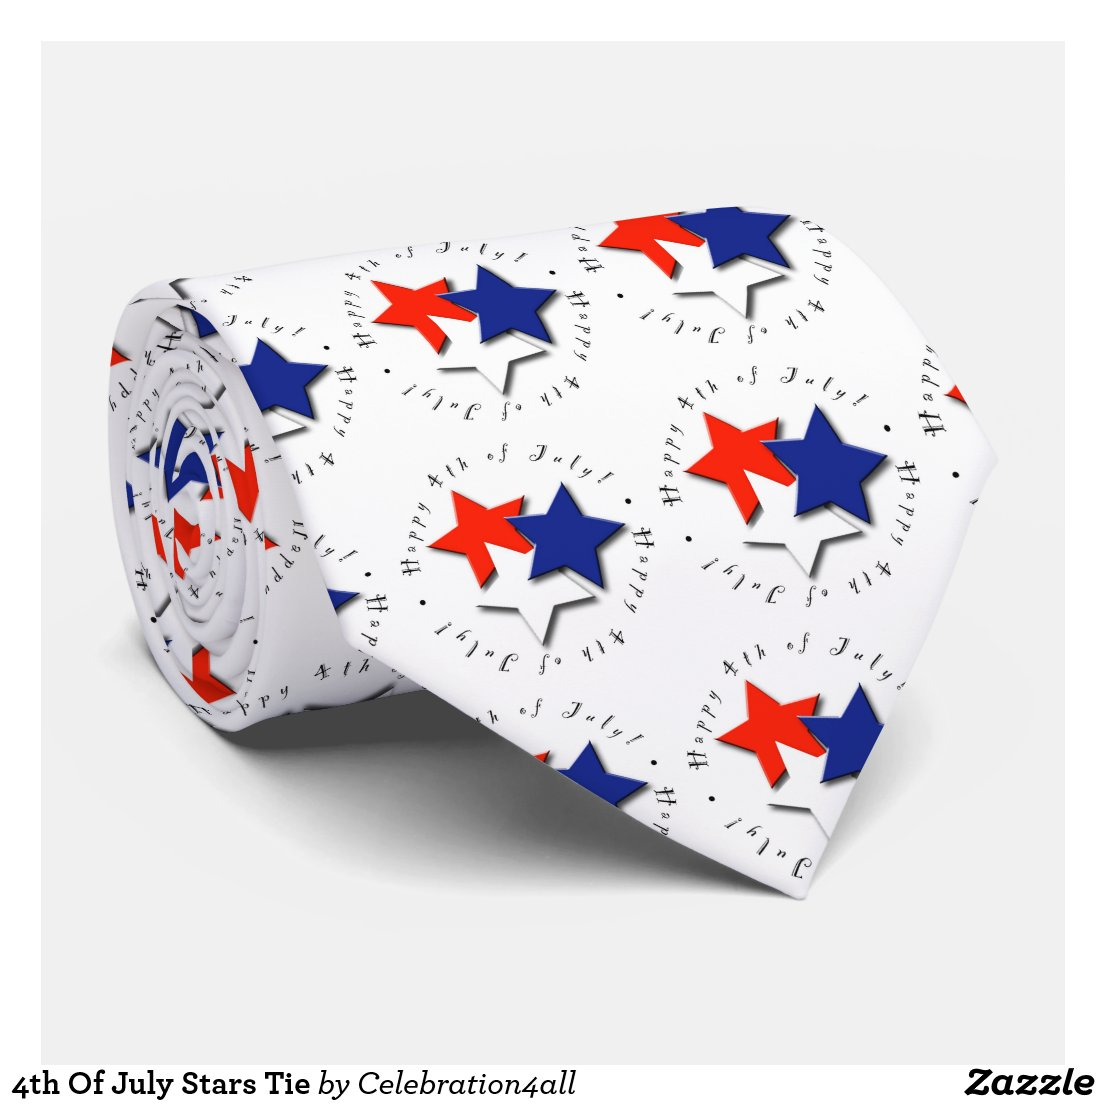 4th Of July Stars Tie